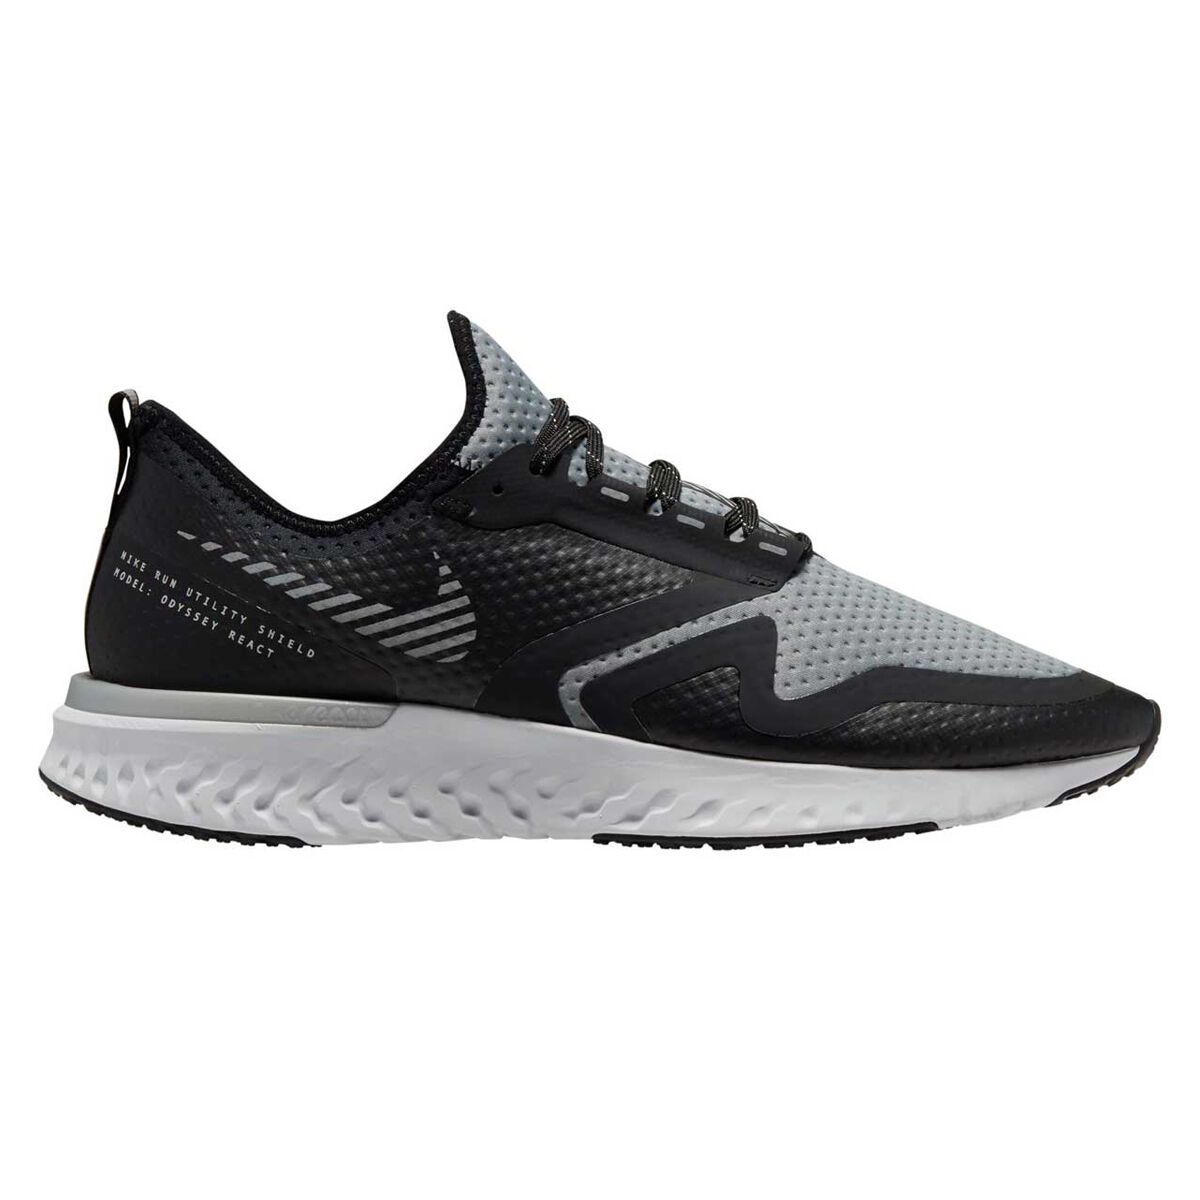 Nike Odyssey React Shield 2 Mens Running Shoes